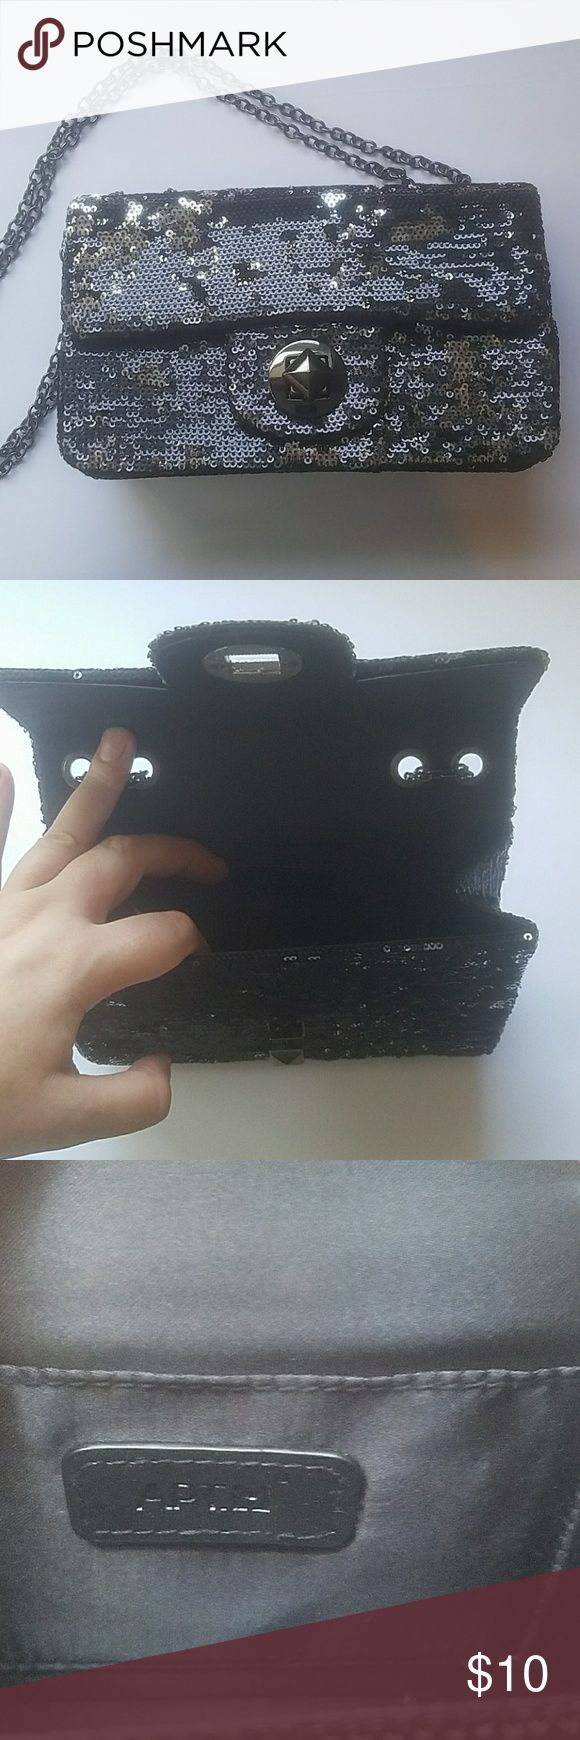 Black silver mermaid sequin handbag purse evening 🍀will accept all reasonable offers 🍀quick shipping 🍀open to bundling discounts 🍀no trades  Black and silver mermaid sequin purse. Could be an every day or a special occasion bag. Handle is chain, and you can have it as shoulder bag or longer like a waist or crossbody bag depending on how you adjust the chain handle. Apt 9 brand, never carried. Apt. 9 Bags Shoulder Bags